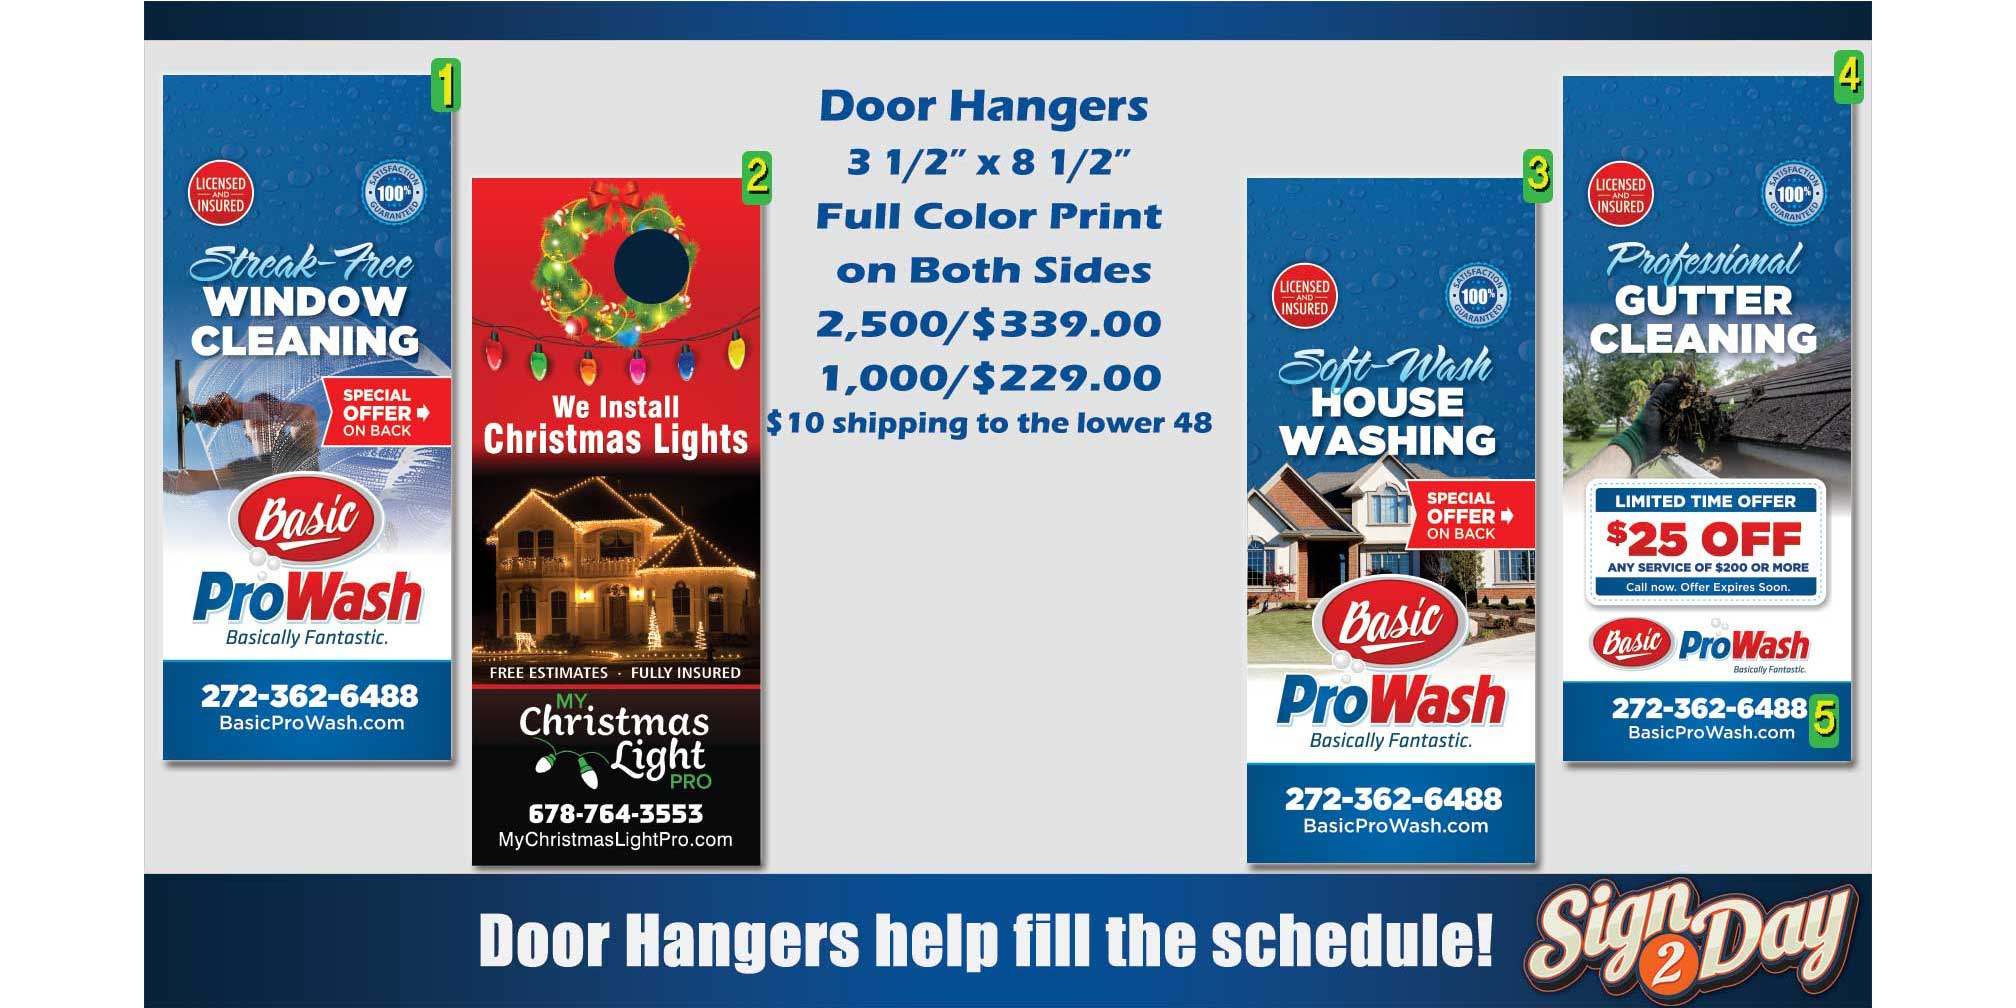 Cheap Gutter Cleaning Door Hanger Ideas